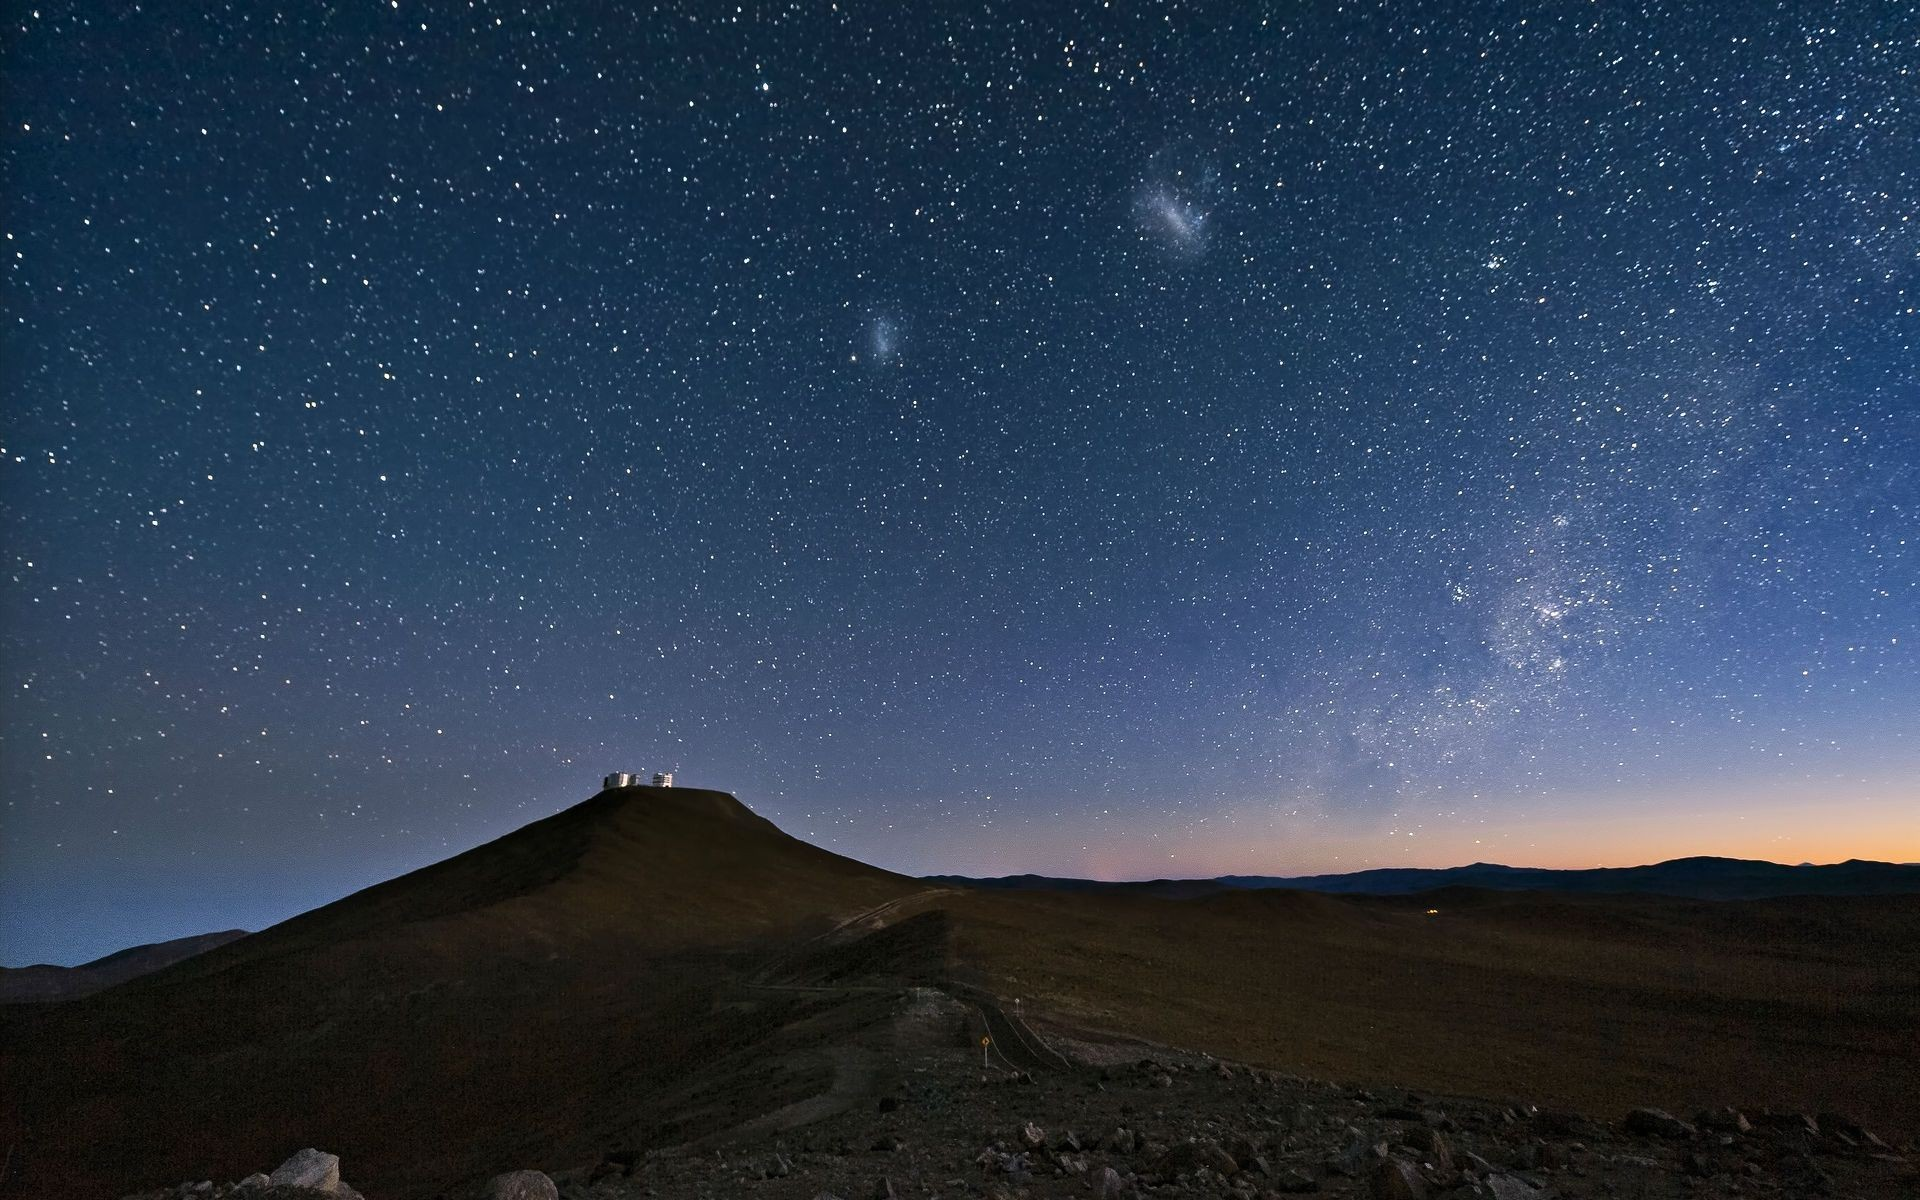 Starry Sky wallpaper ·① Download free cool backgrounds for ...